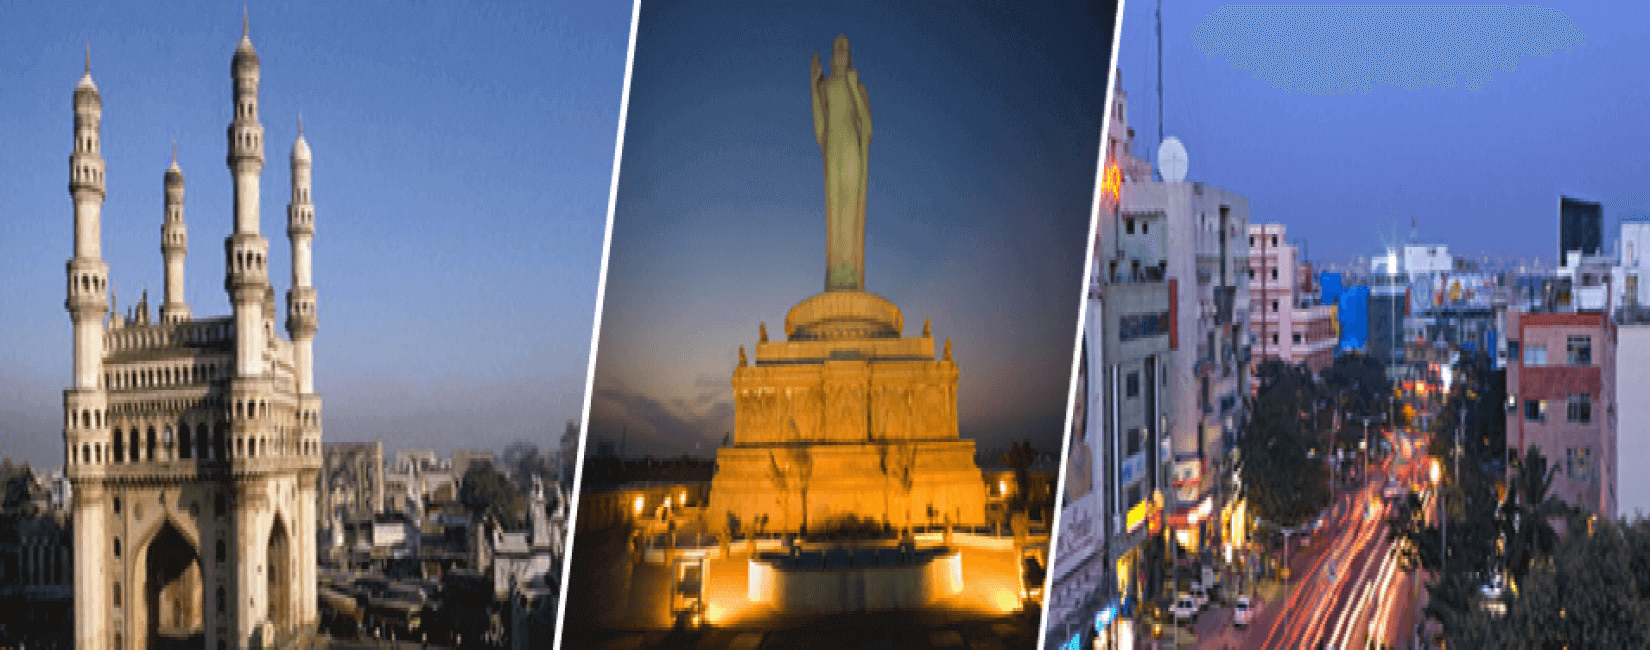 Hyderabad City One day Tour